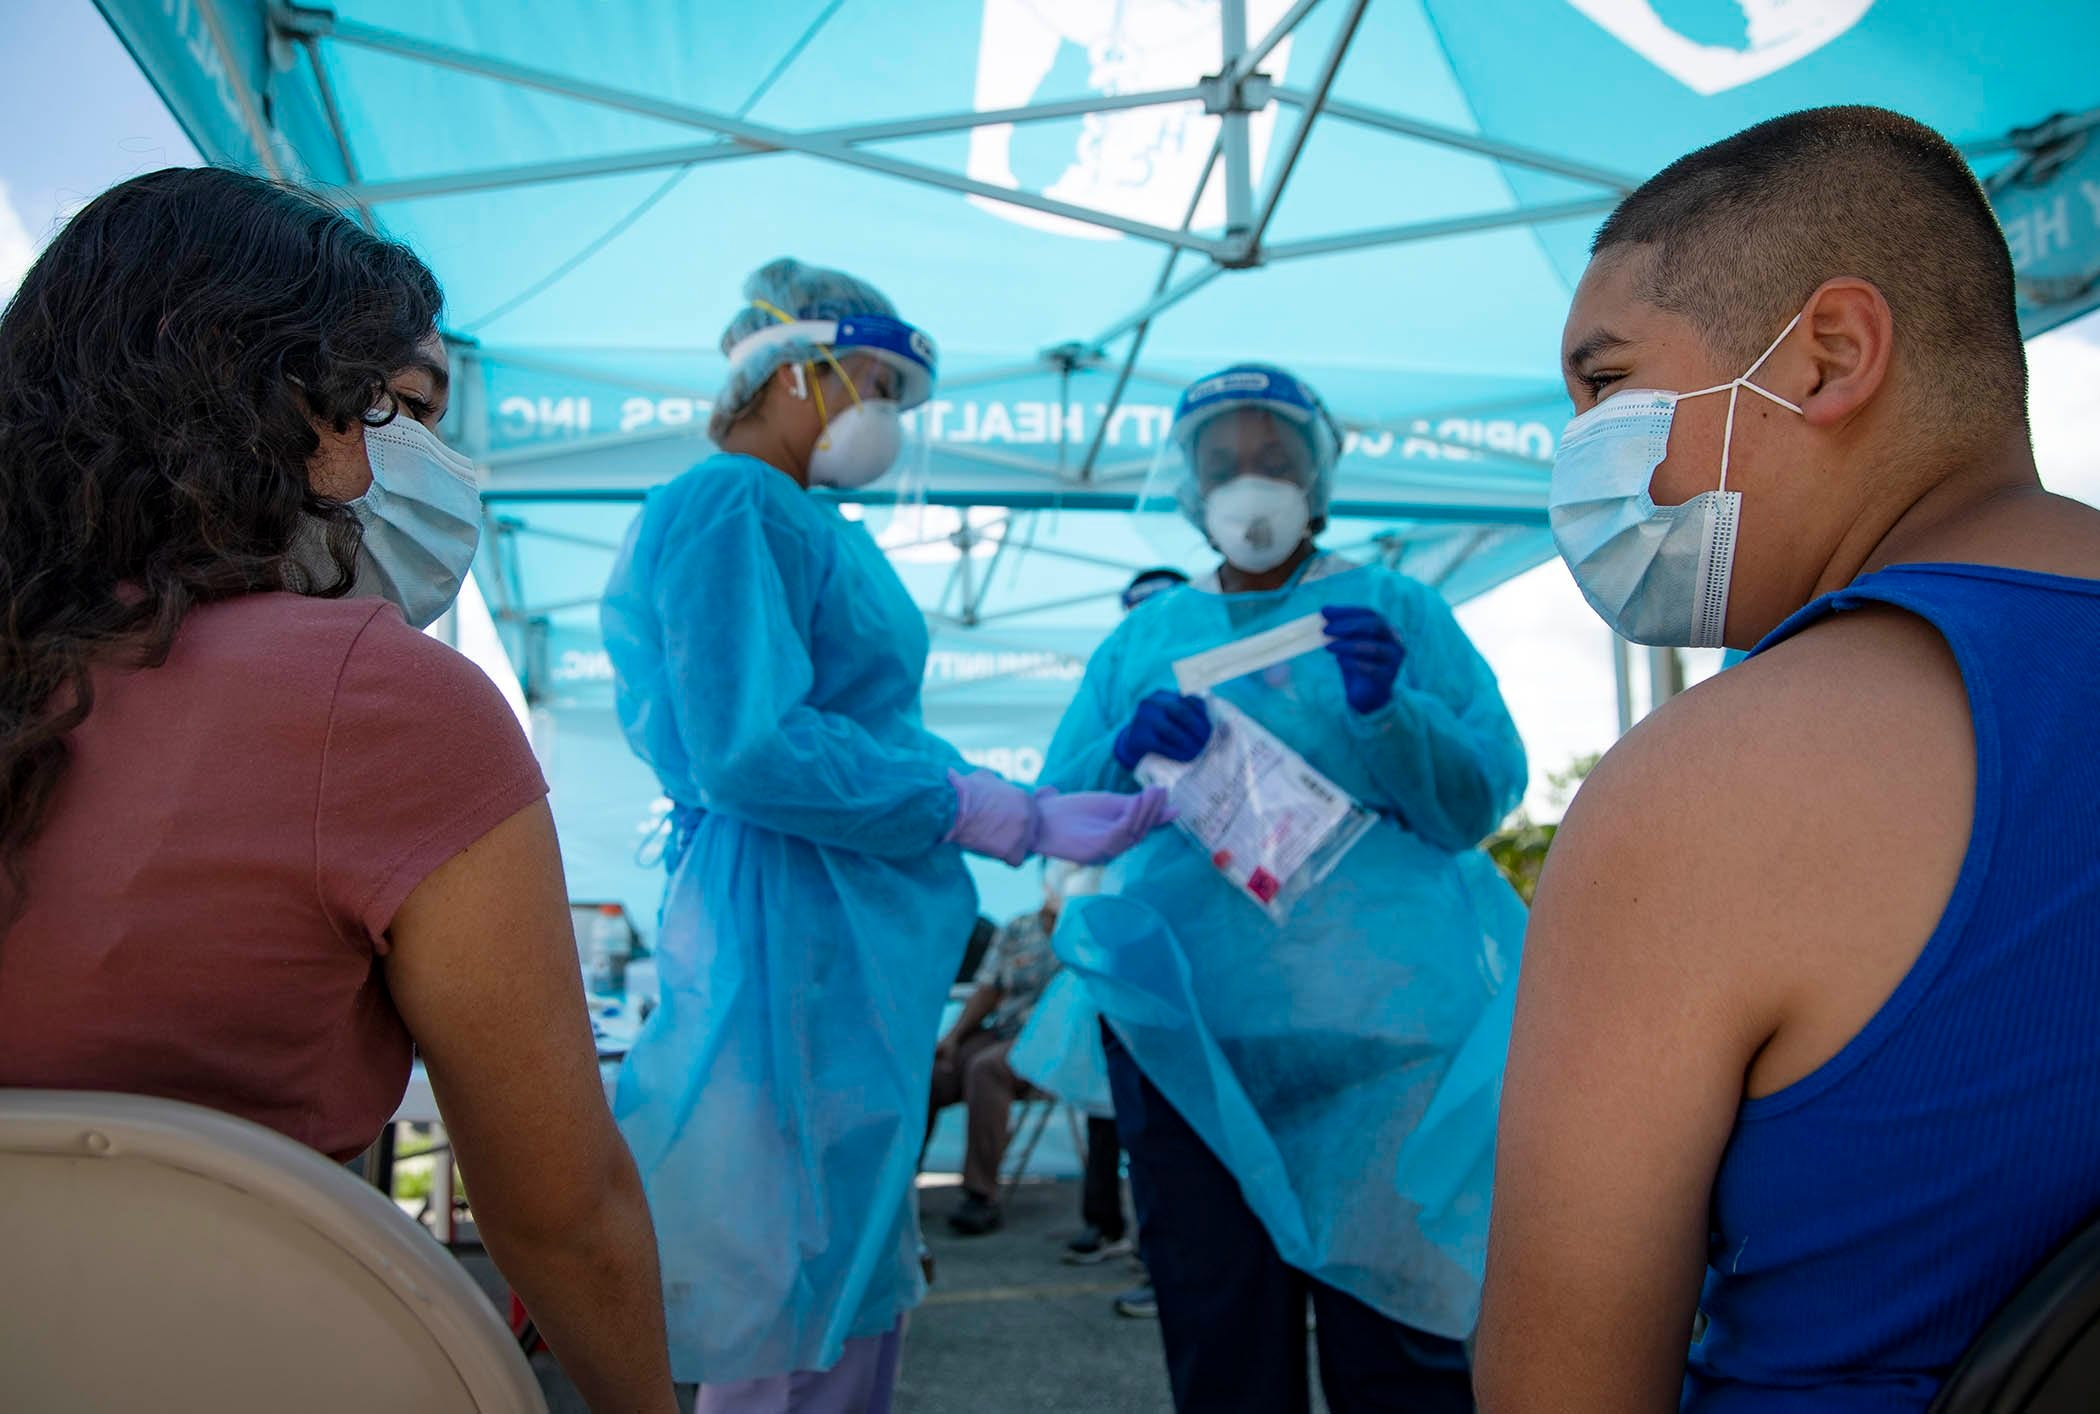 Mayelin Morano, 12, and Ismael Macedo, 10, nervously await a COVID-19 test at a mobile test site run by Florida Community Health Centers in South Bay. The mobile test site is at the food distribution site organized by Tammy Jackson Moore who helped start, the non-profit, Guardians of the Glades. Every Friday she coordinates in one of the tri-city area centers a food distribution and coronavirus testing site. She helped distribute 100,000 pounds of food in South Bay, July 24, 2020.